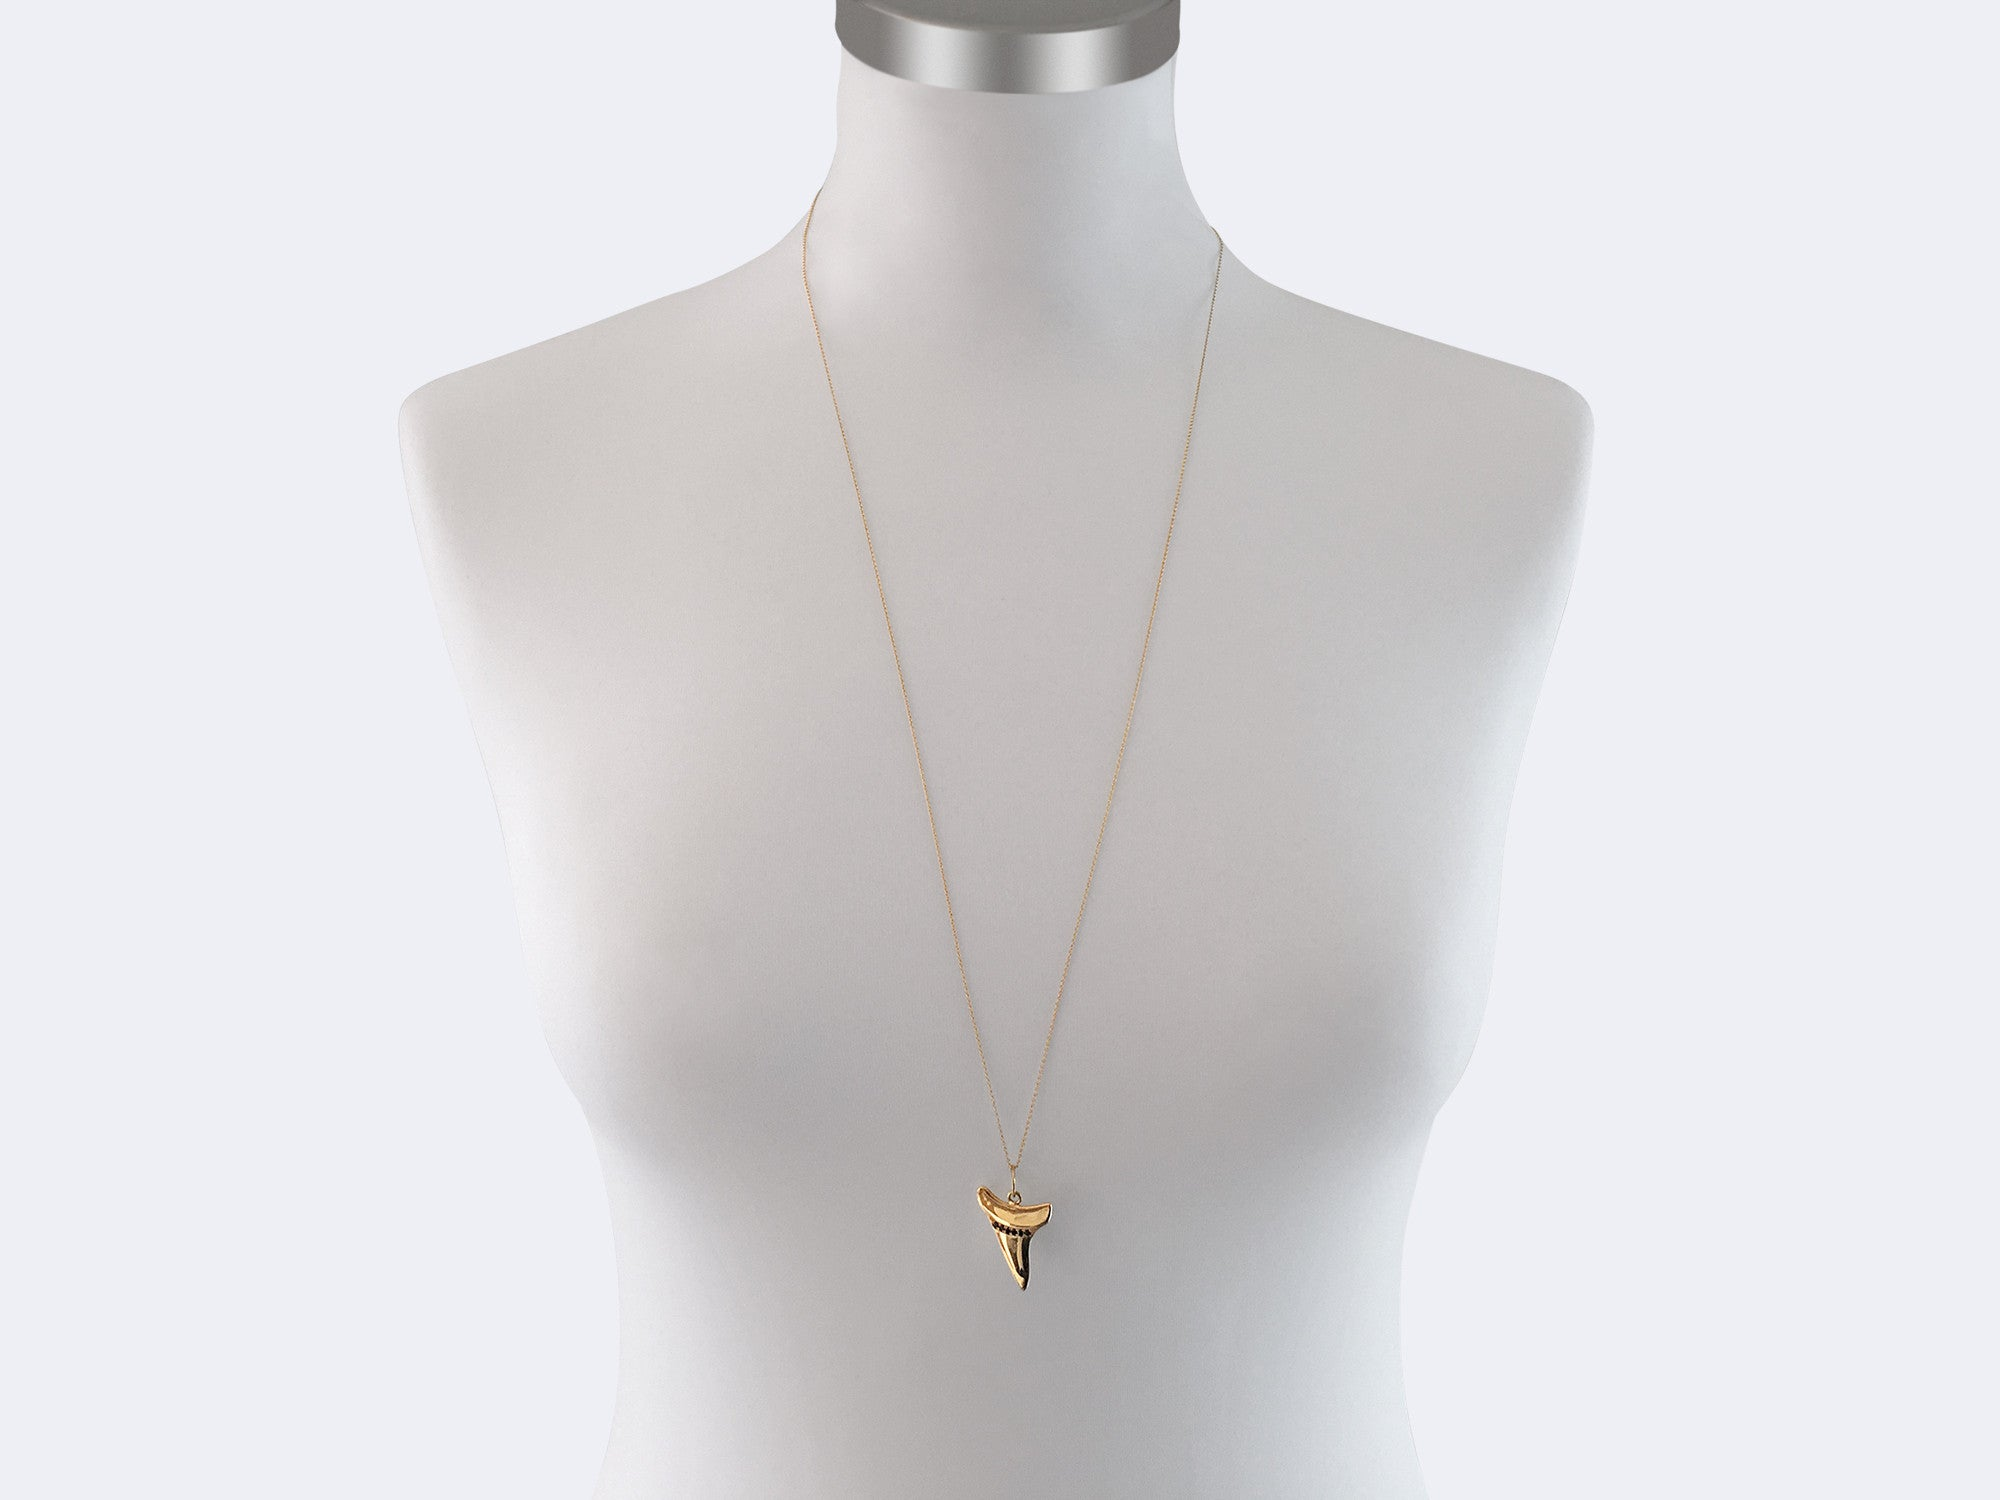 an jewelry sea hangs products embellished vermeil from oxidized a stone tooth necklace image gold pendant fossilized shark and